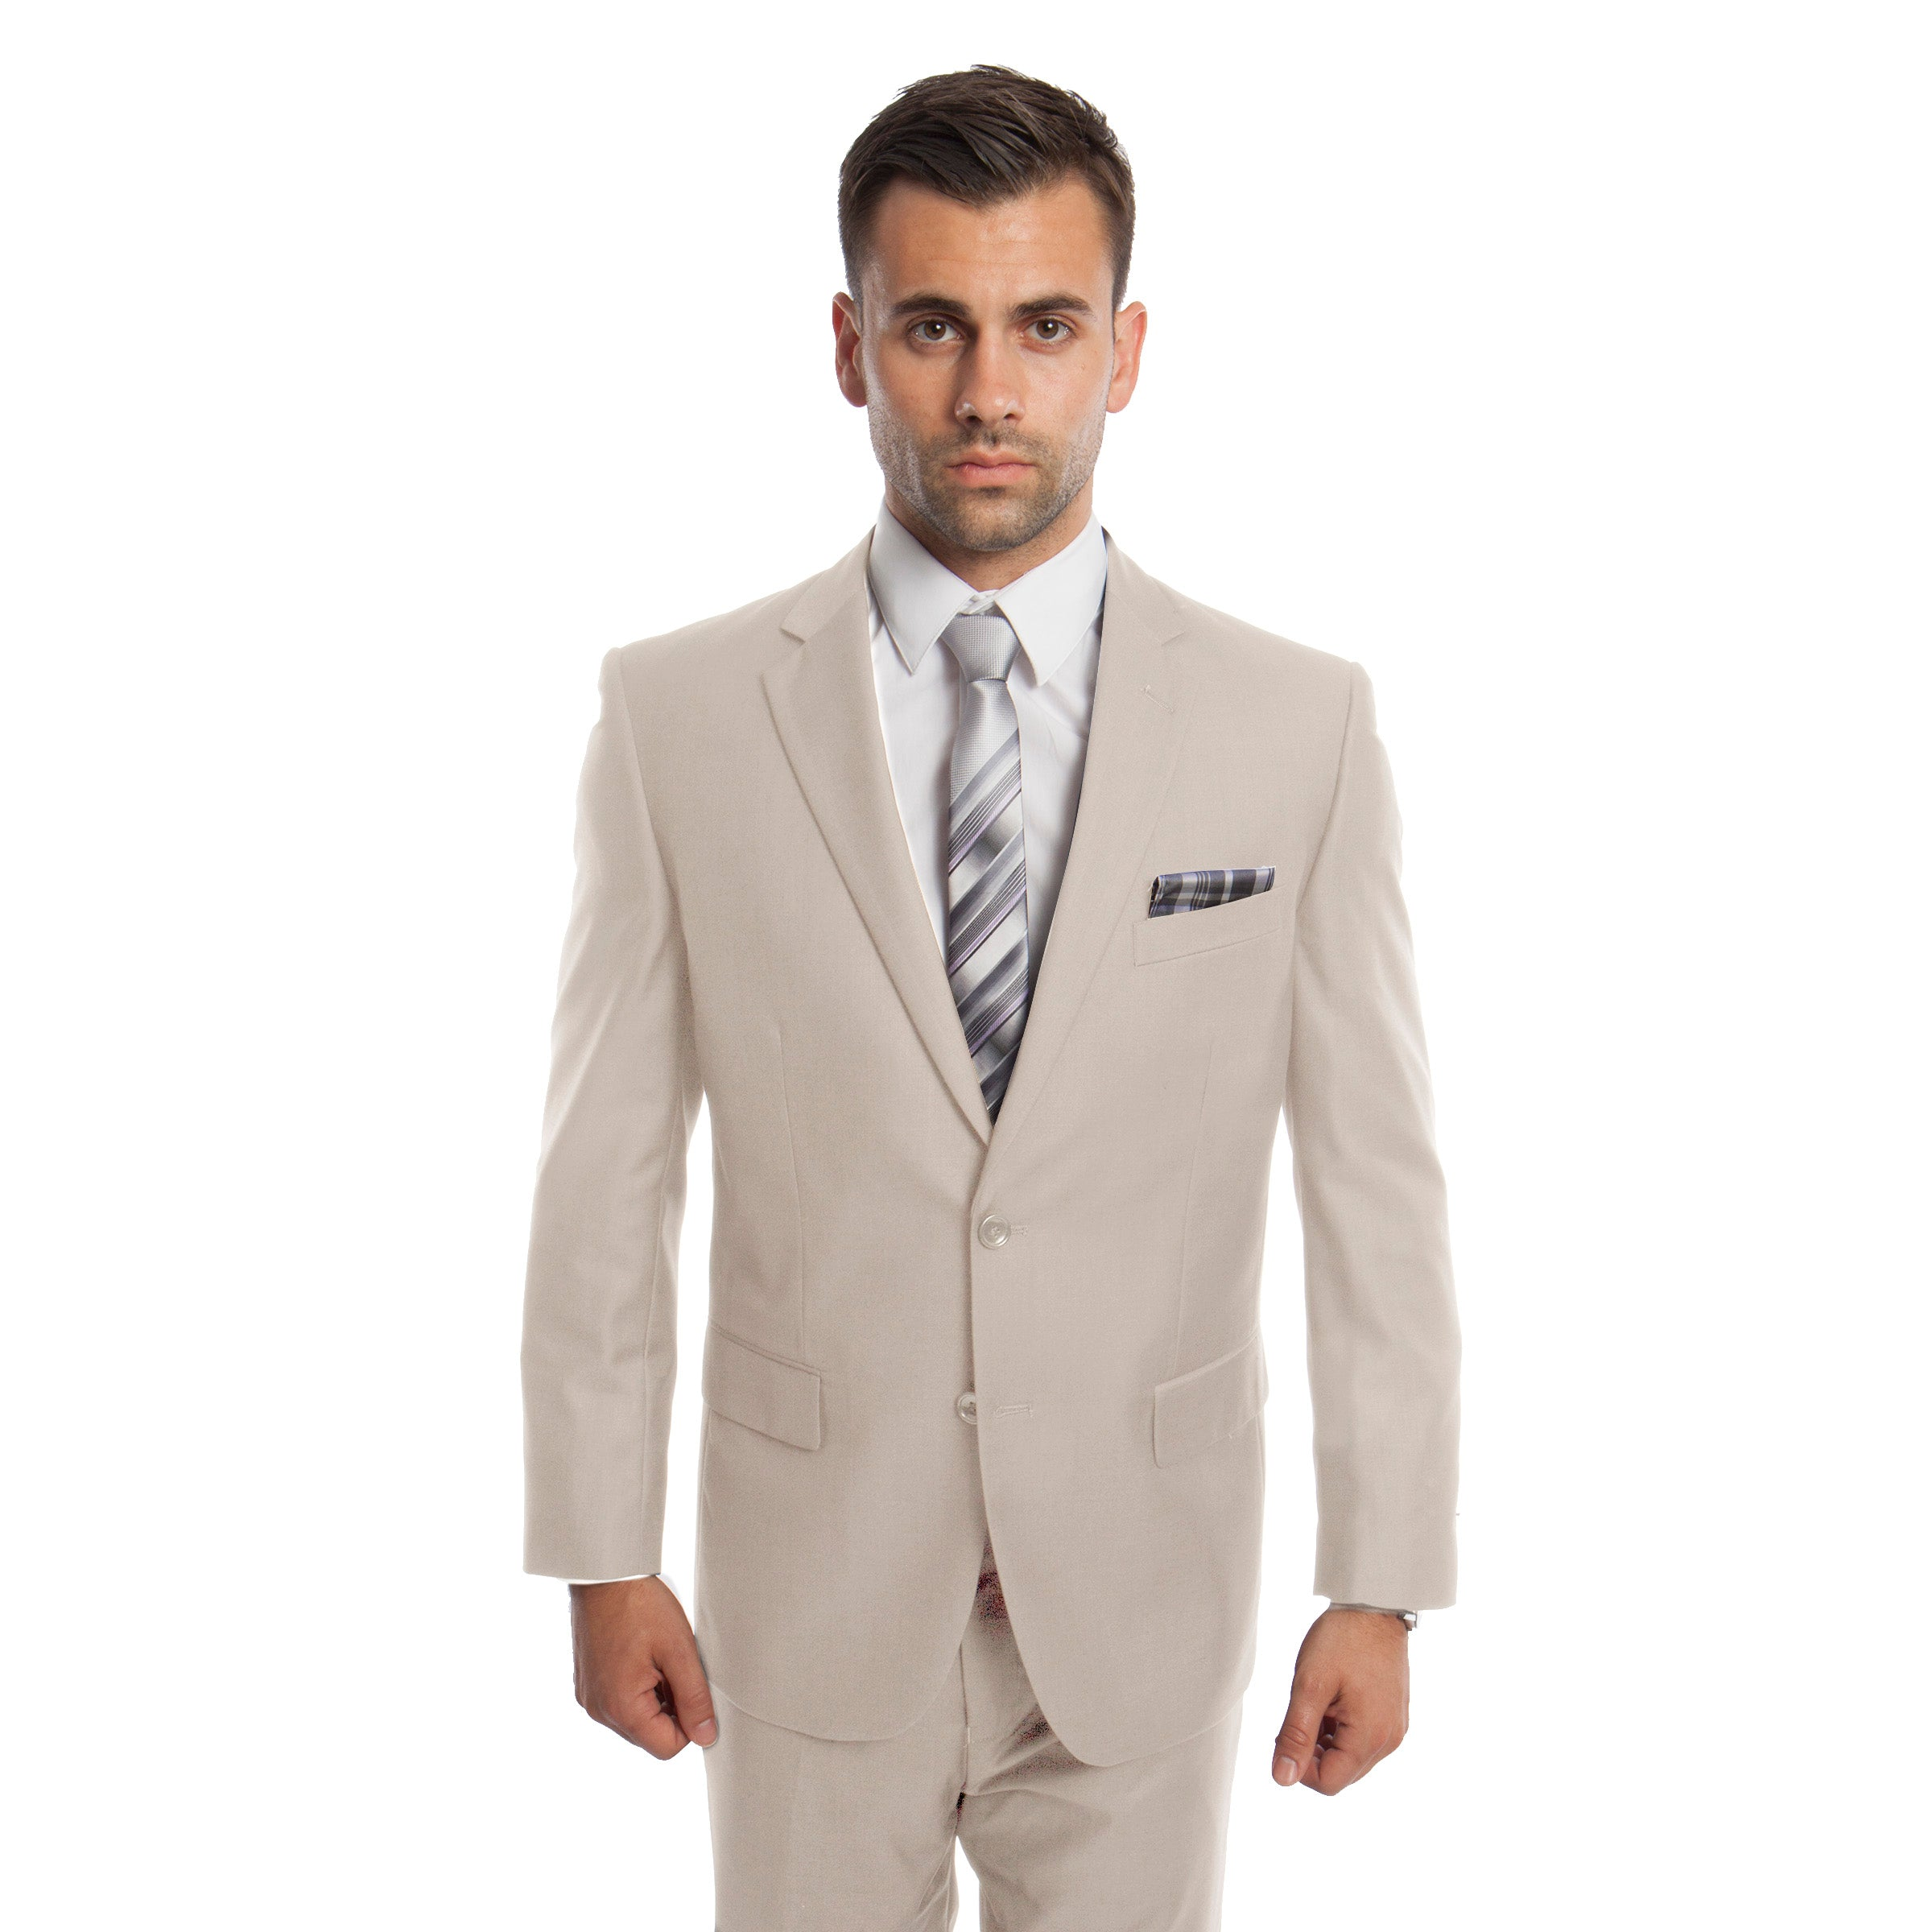 Tan Solid Mens Suit 2-PC Regular Modern Fit Suits For Men